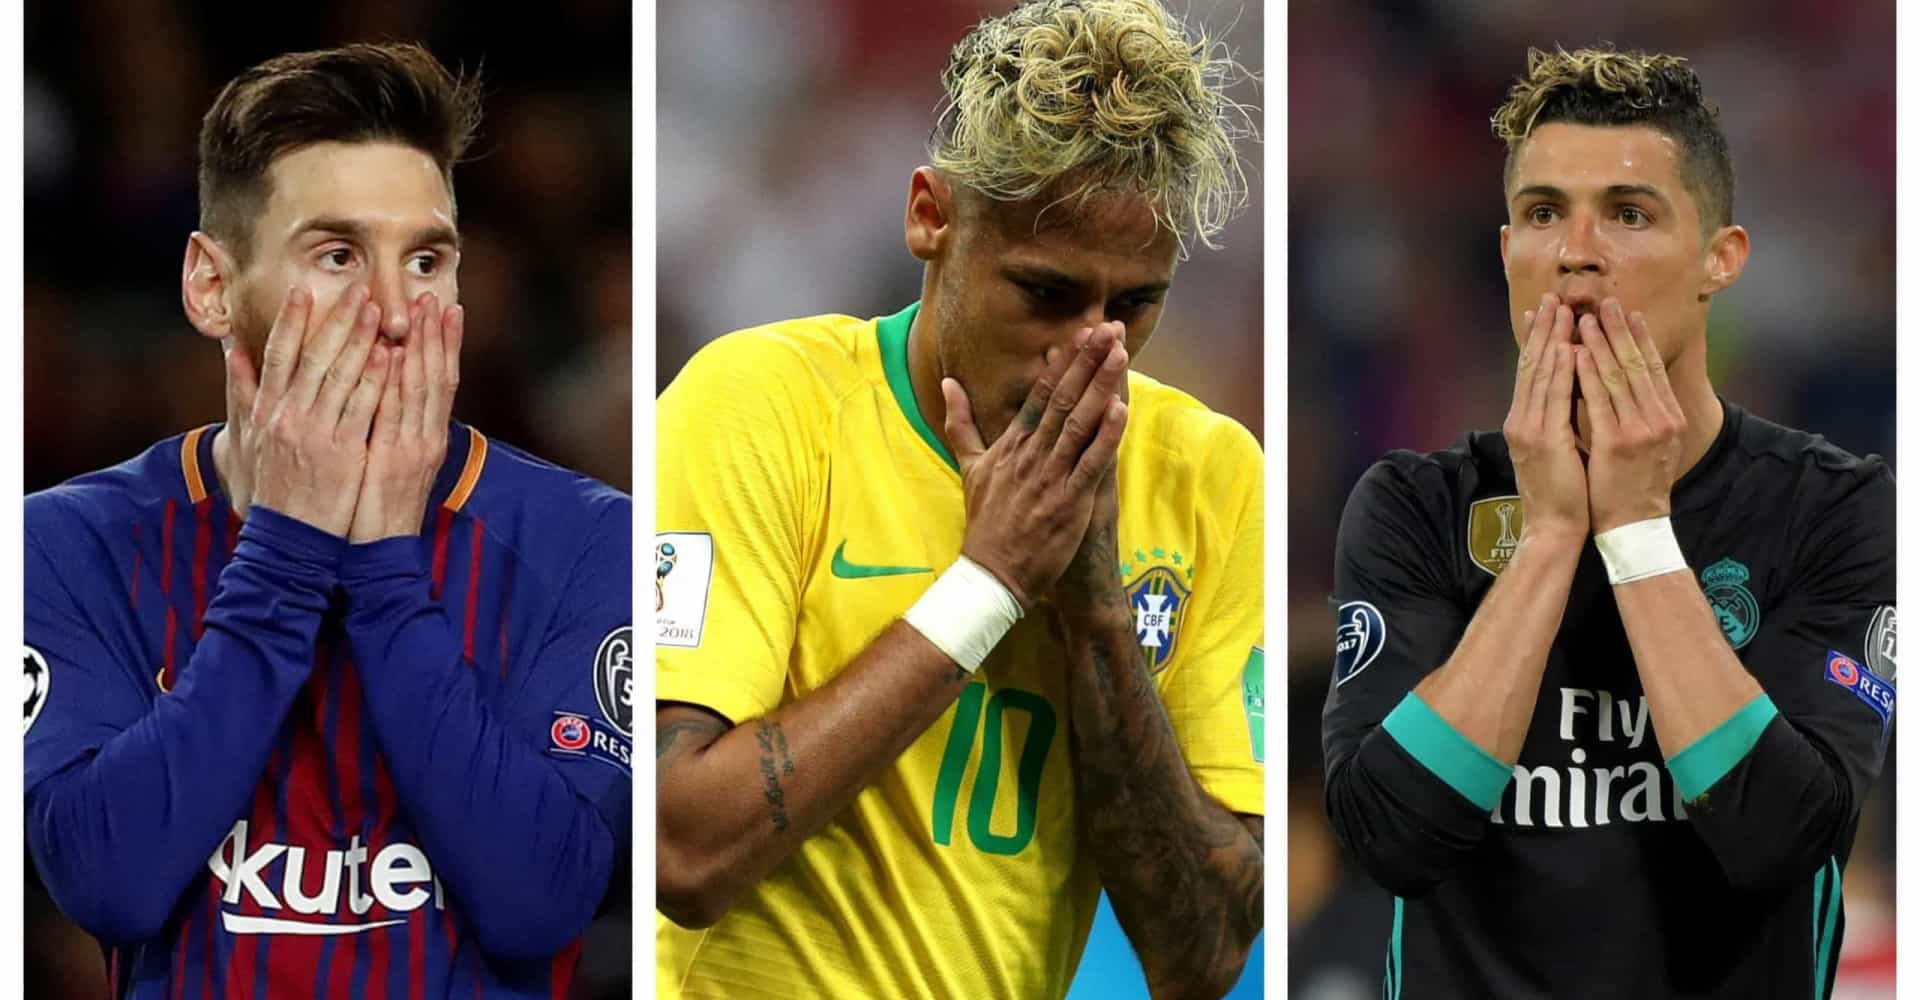 Taxing problems: Ronaldo, Messi, and Neymar court controversy